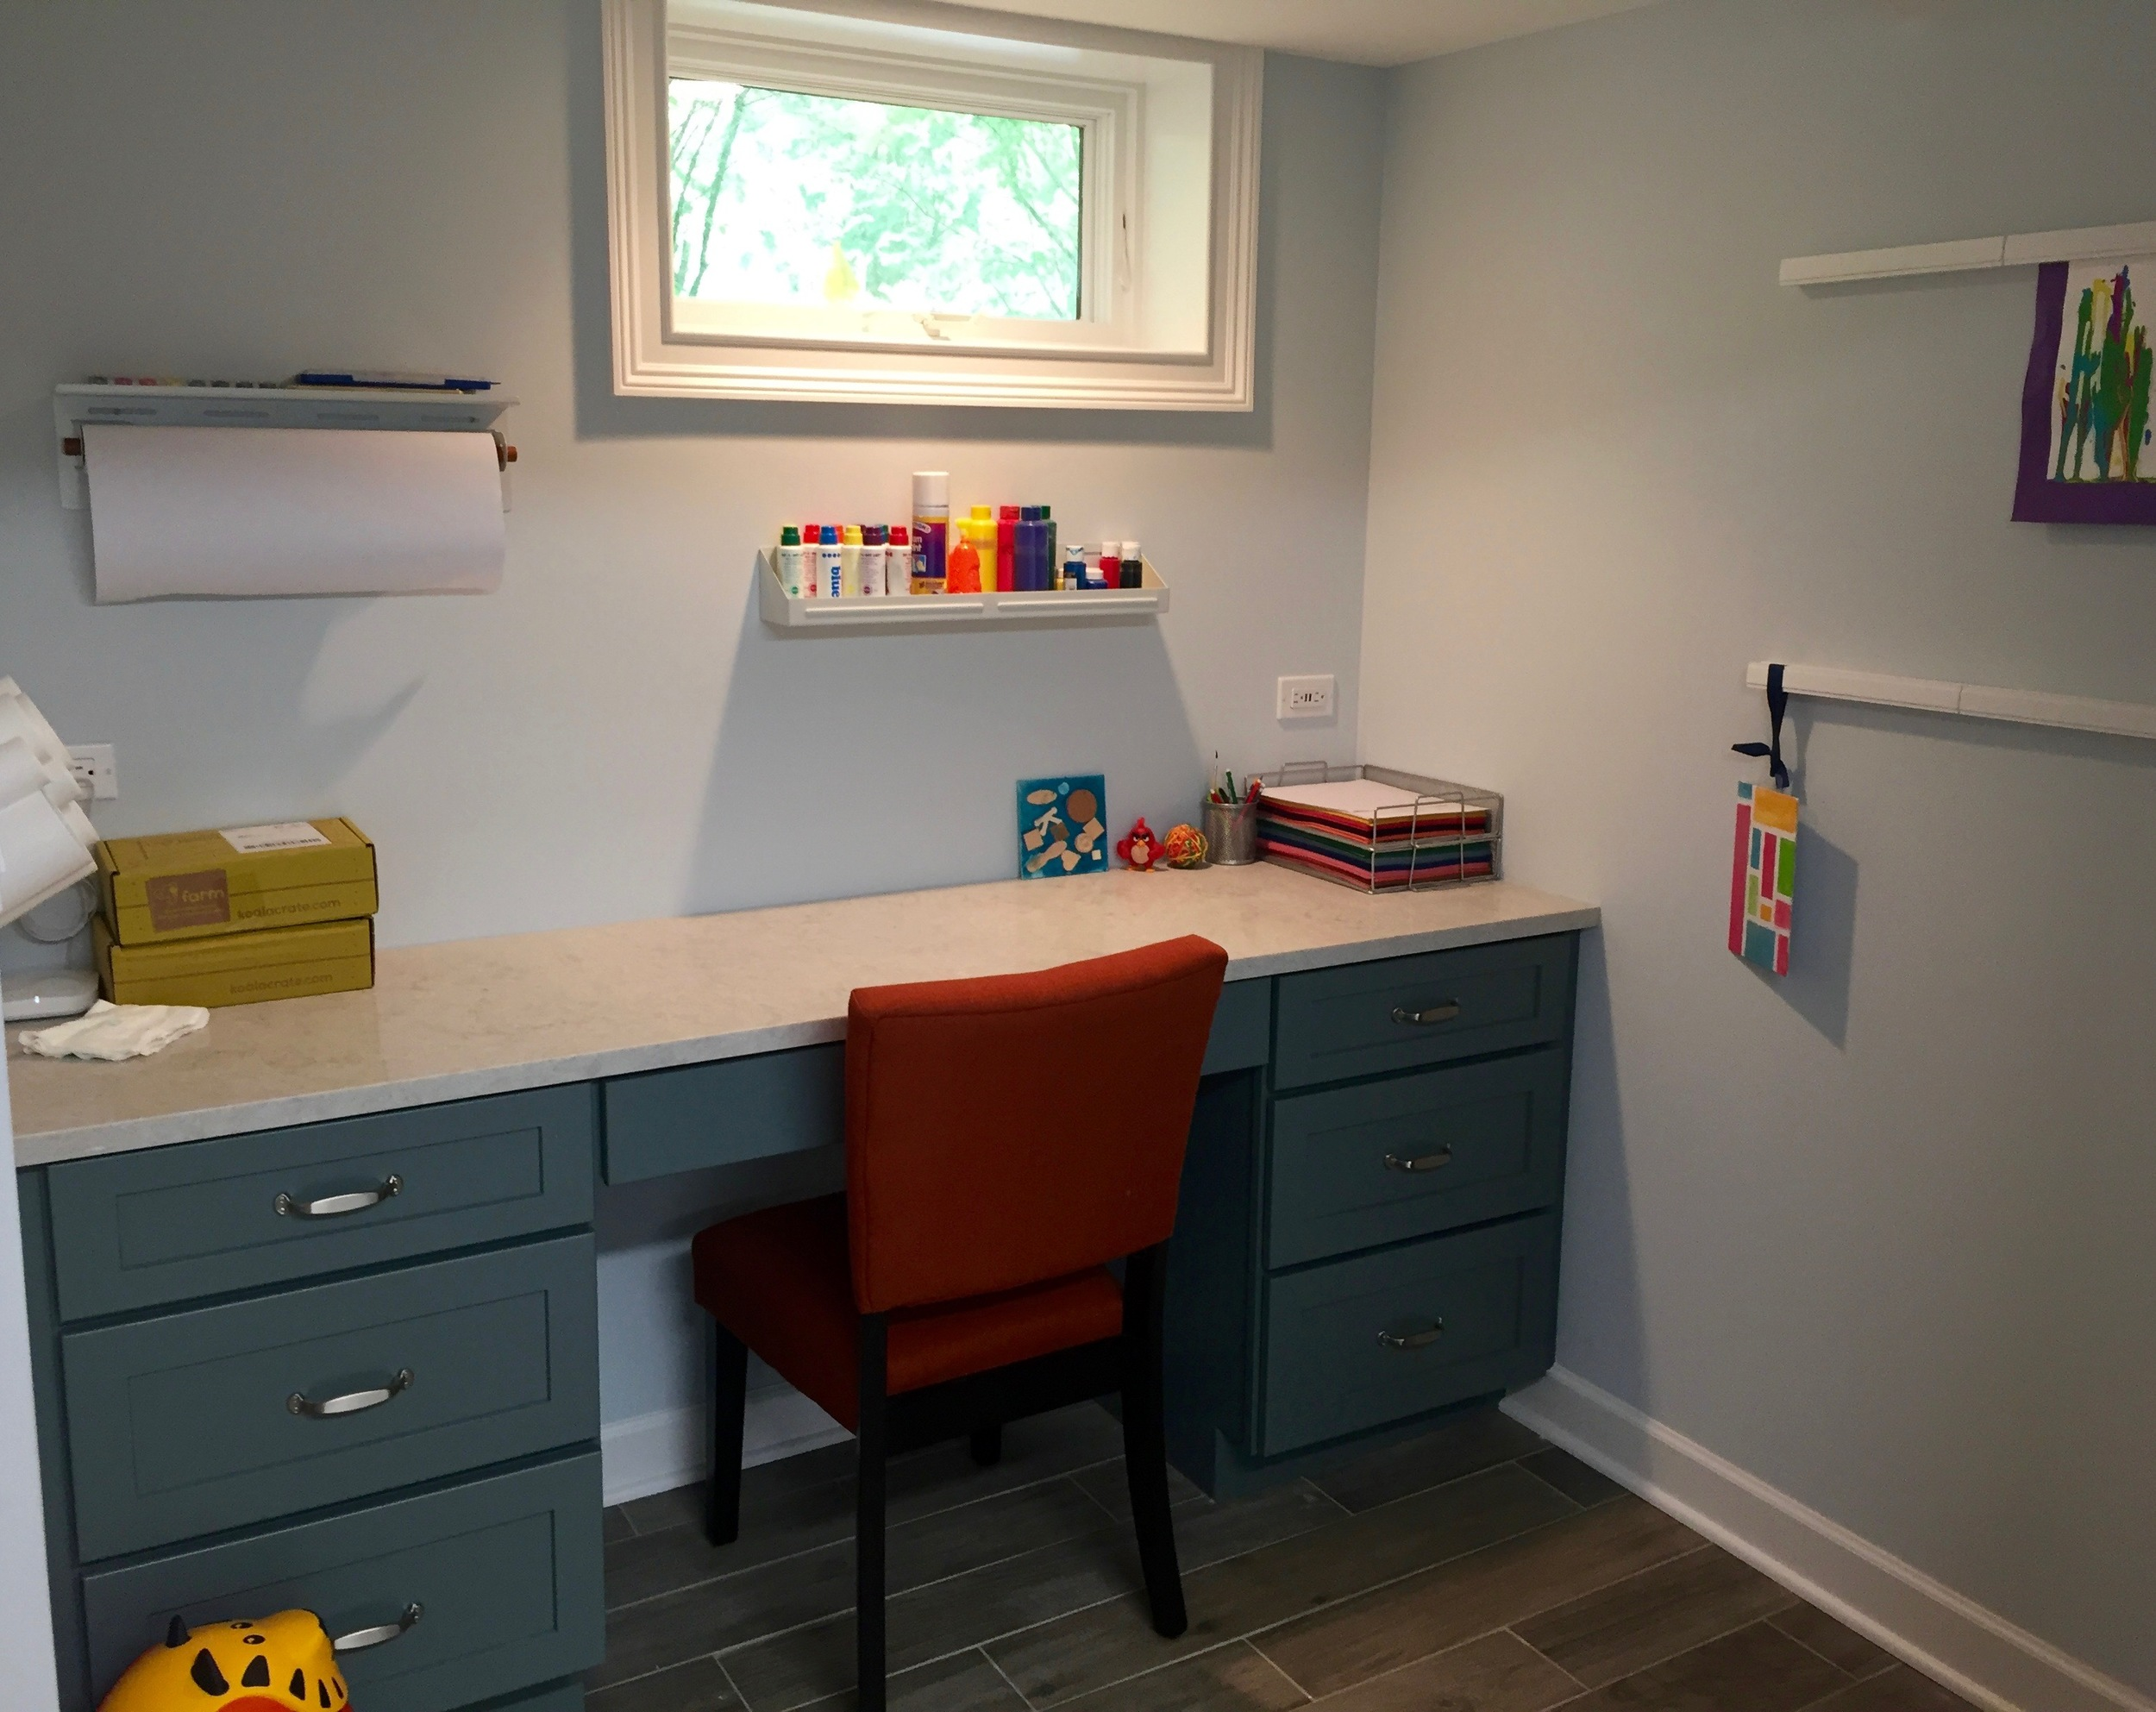 A desk with a quartz top offers storage and durability to resist paint, markers, and glue. Wall-mounted organizers keep art supplies contained above the work surface. Dual outlets with 4 USB ports accommodate electronic devices and,in the future, the space can be converted to a homework station.